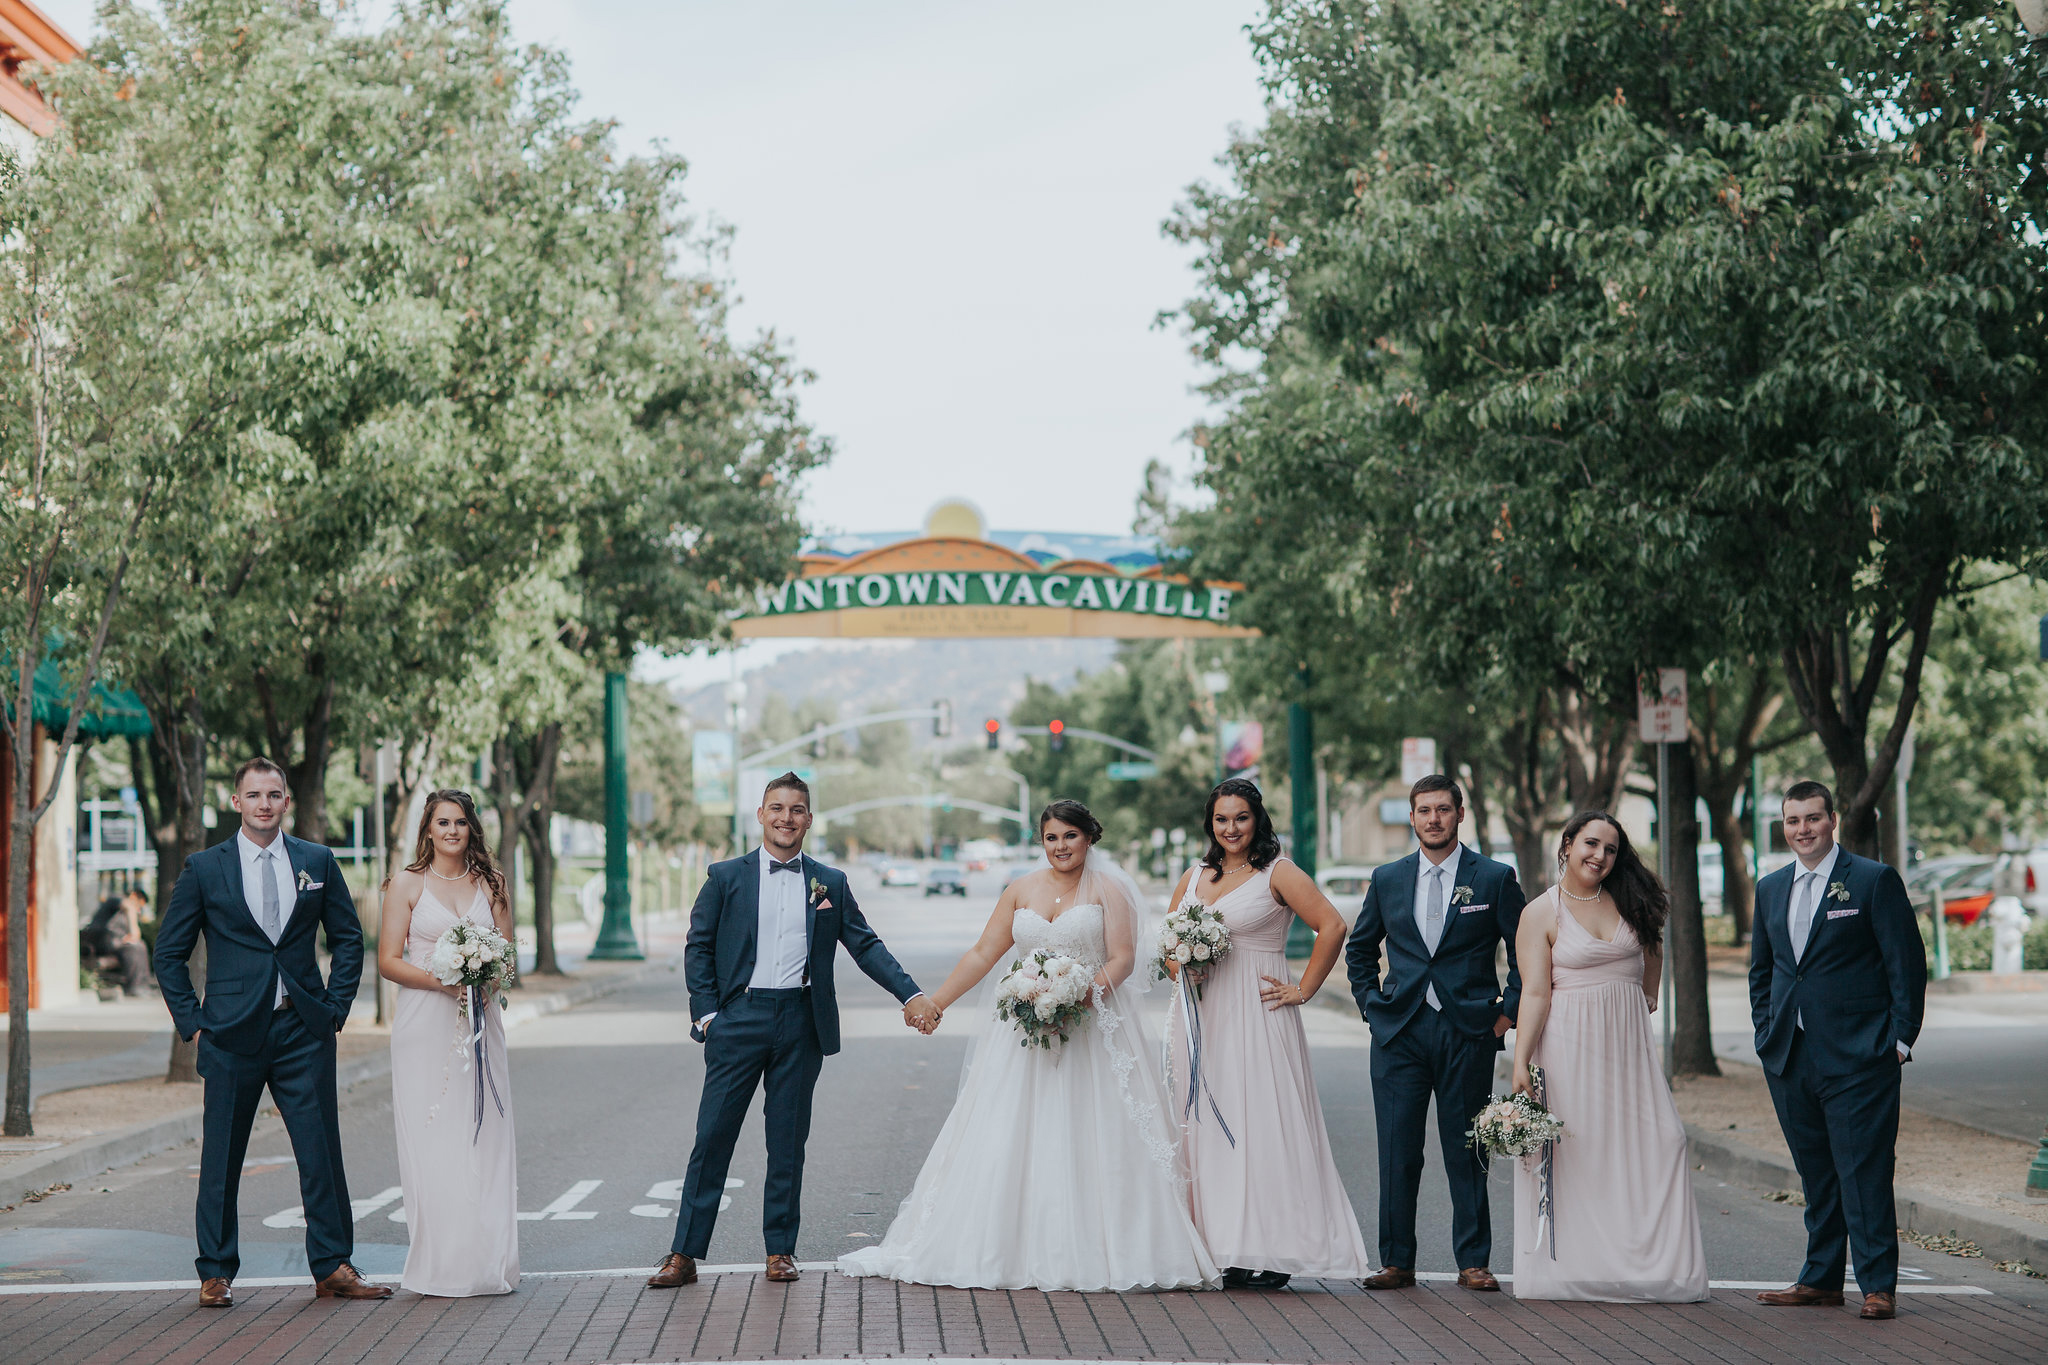 wedding photography | Vacaville Opera House Wedding | Vacaville and Sacramento